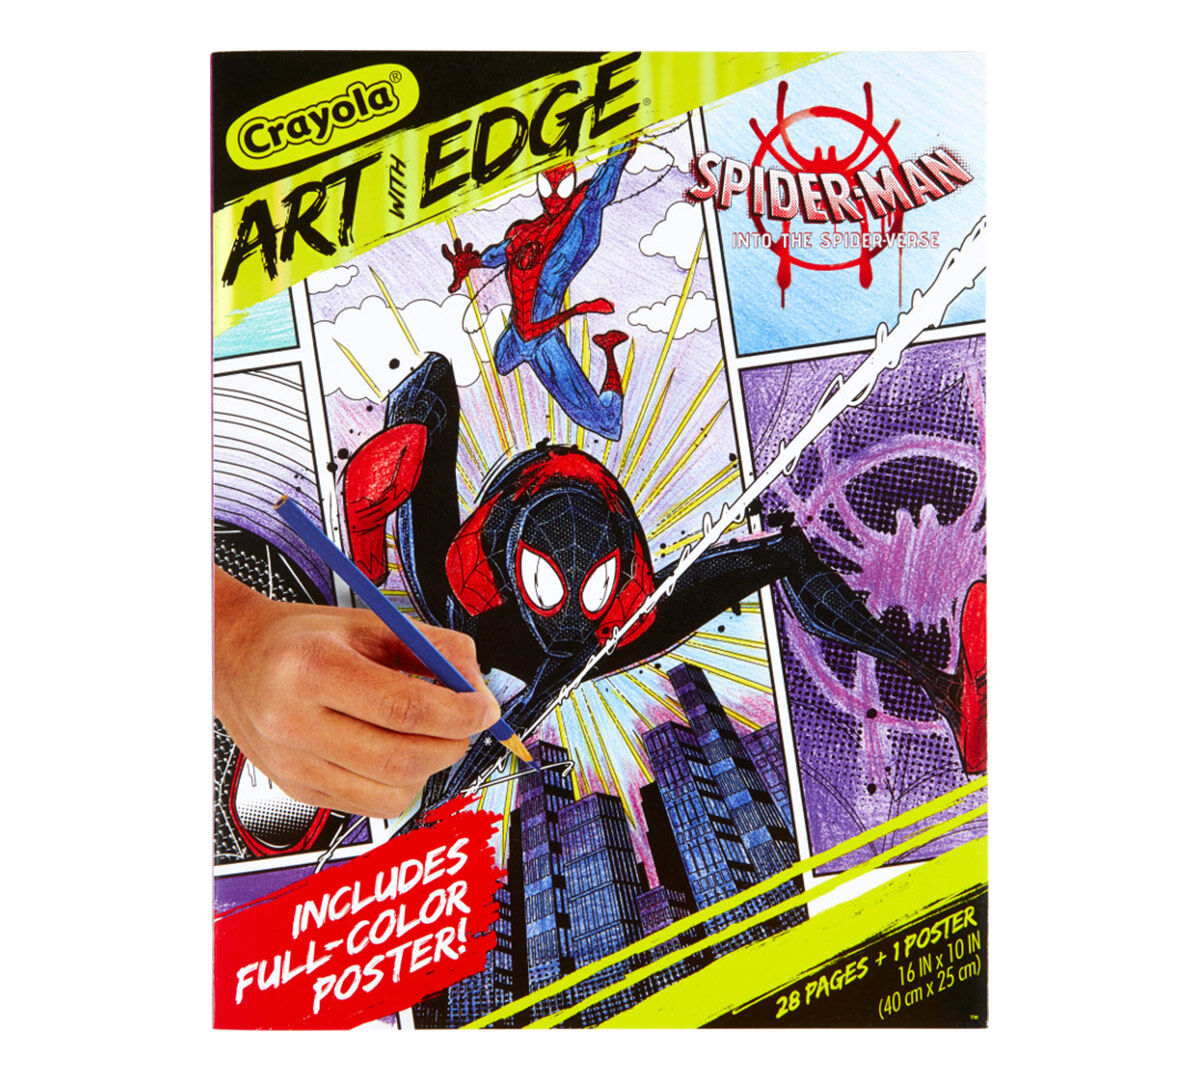 63 Crayola Spiderman Coloring Pages Images & Pictures In HD